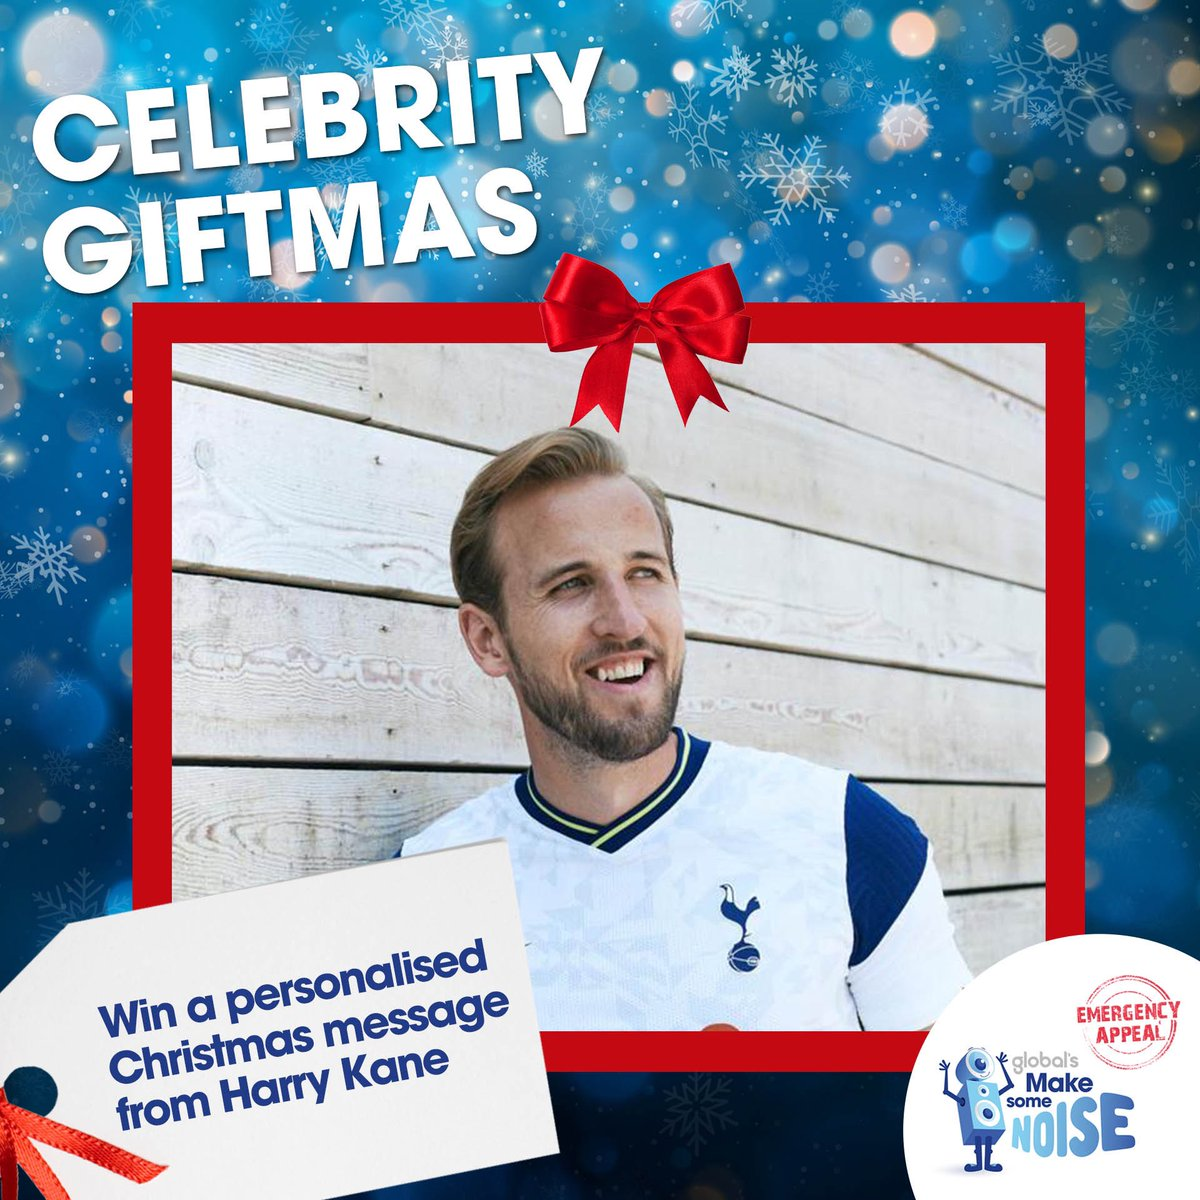 I'm helping those hit hardest by coronavirus across the UK by taking part in Global's@makenoise #CelebrityGiftmas. You can win a video message from me to you, a friend or family member this Christmas. Enter here: